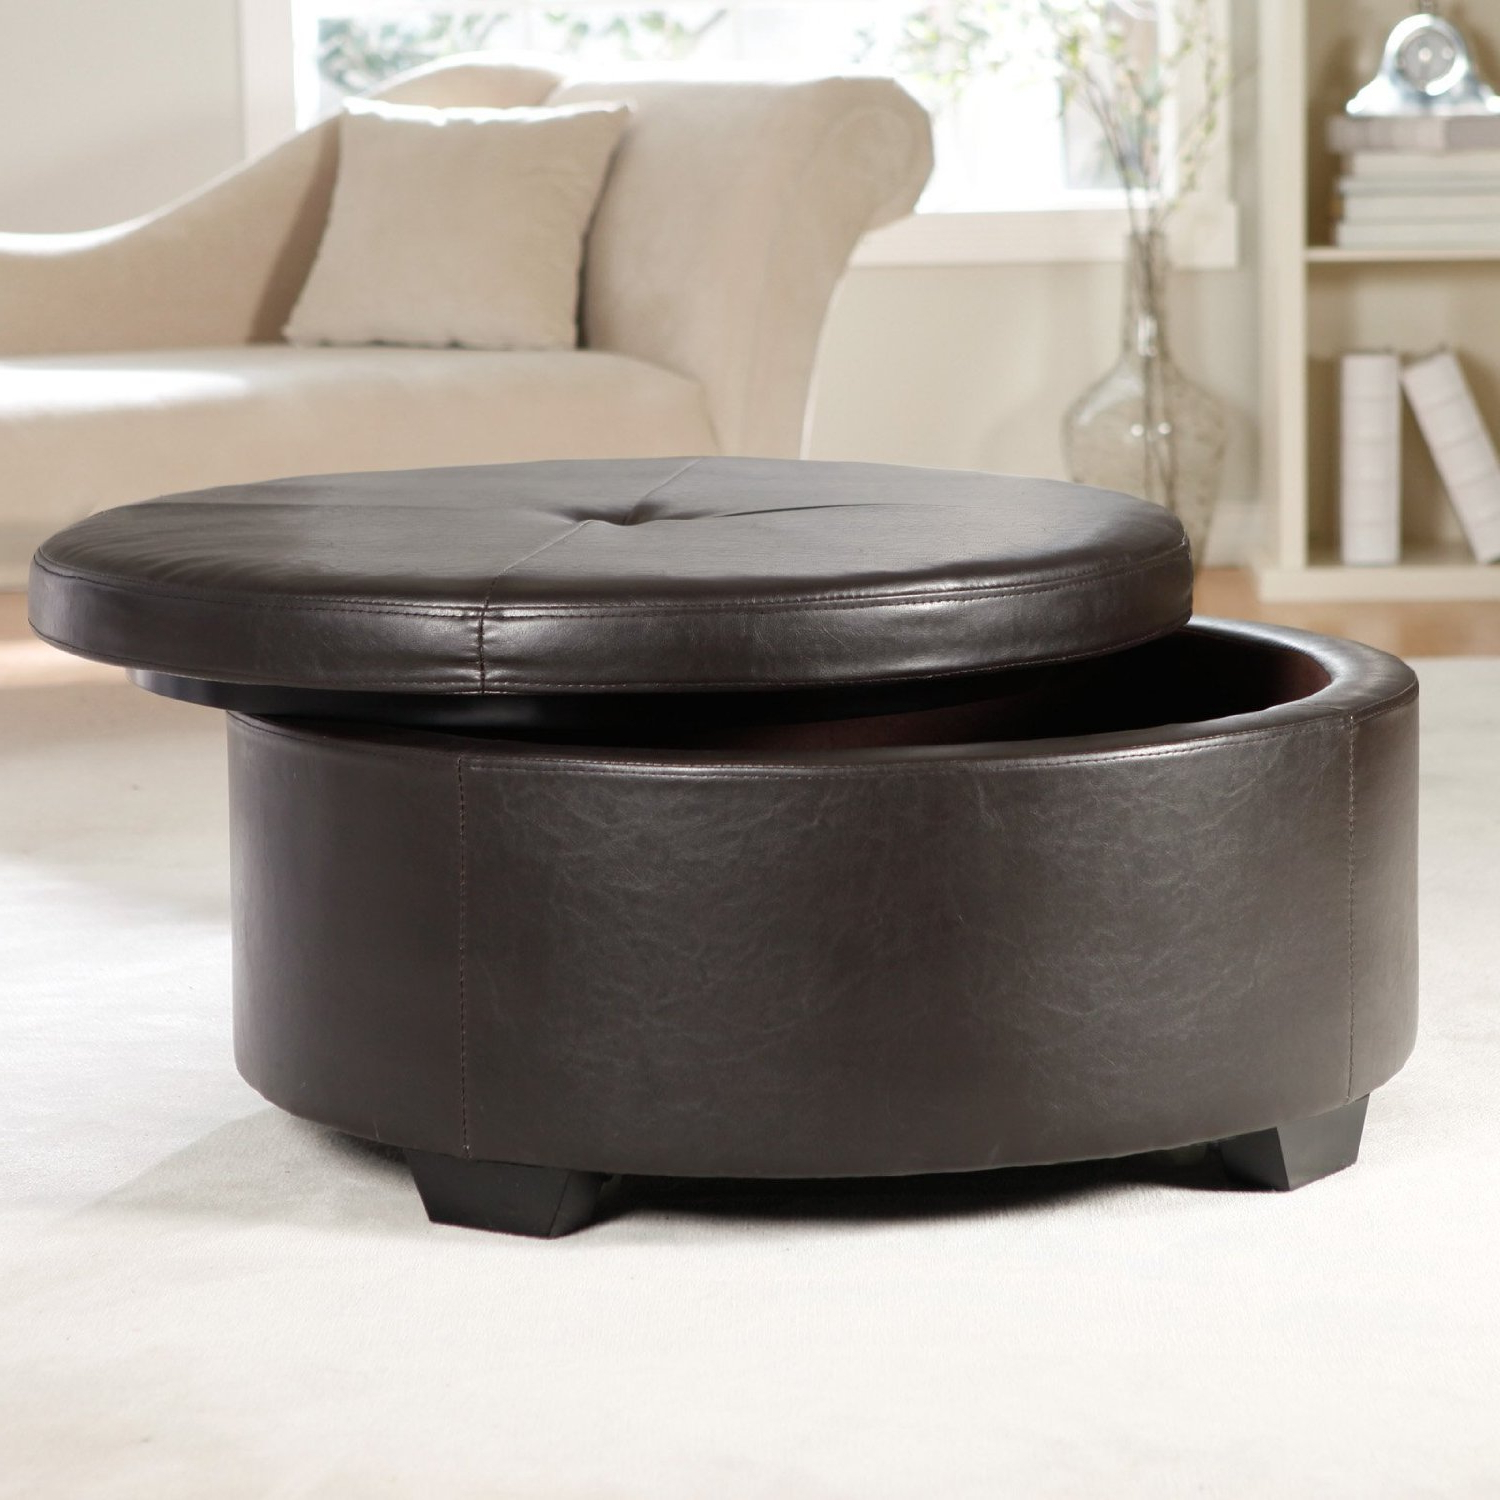 Trendy Round Button Tufted Coffee Tables Inside Coffee Table (View 15 of 20)